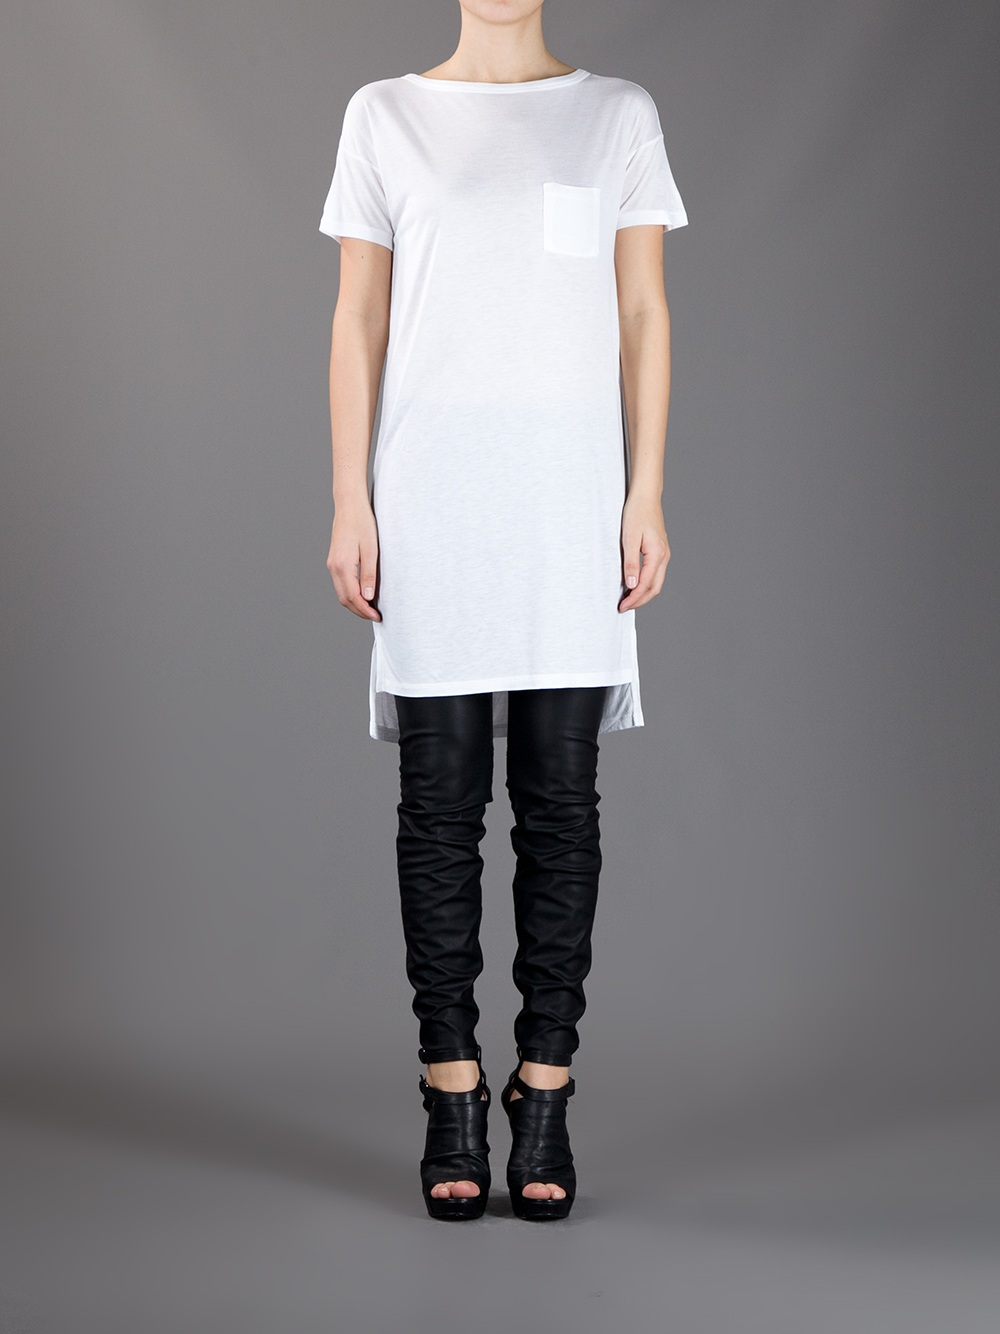 Lyst Alexander Wang T Shirt Dress In White